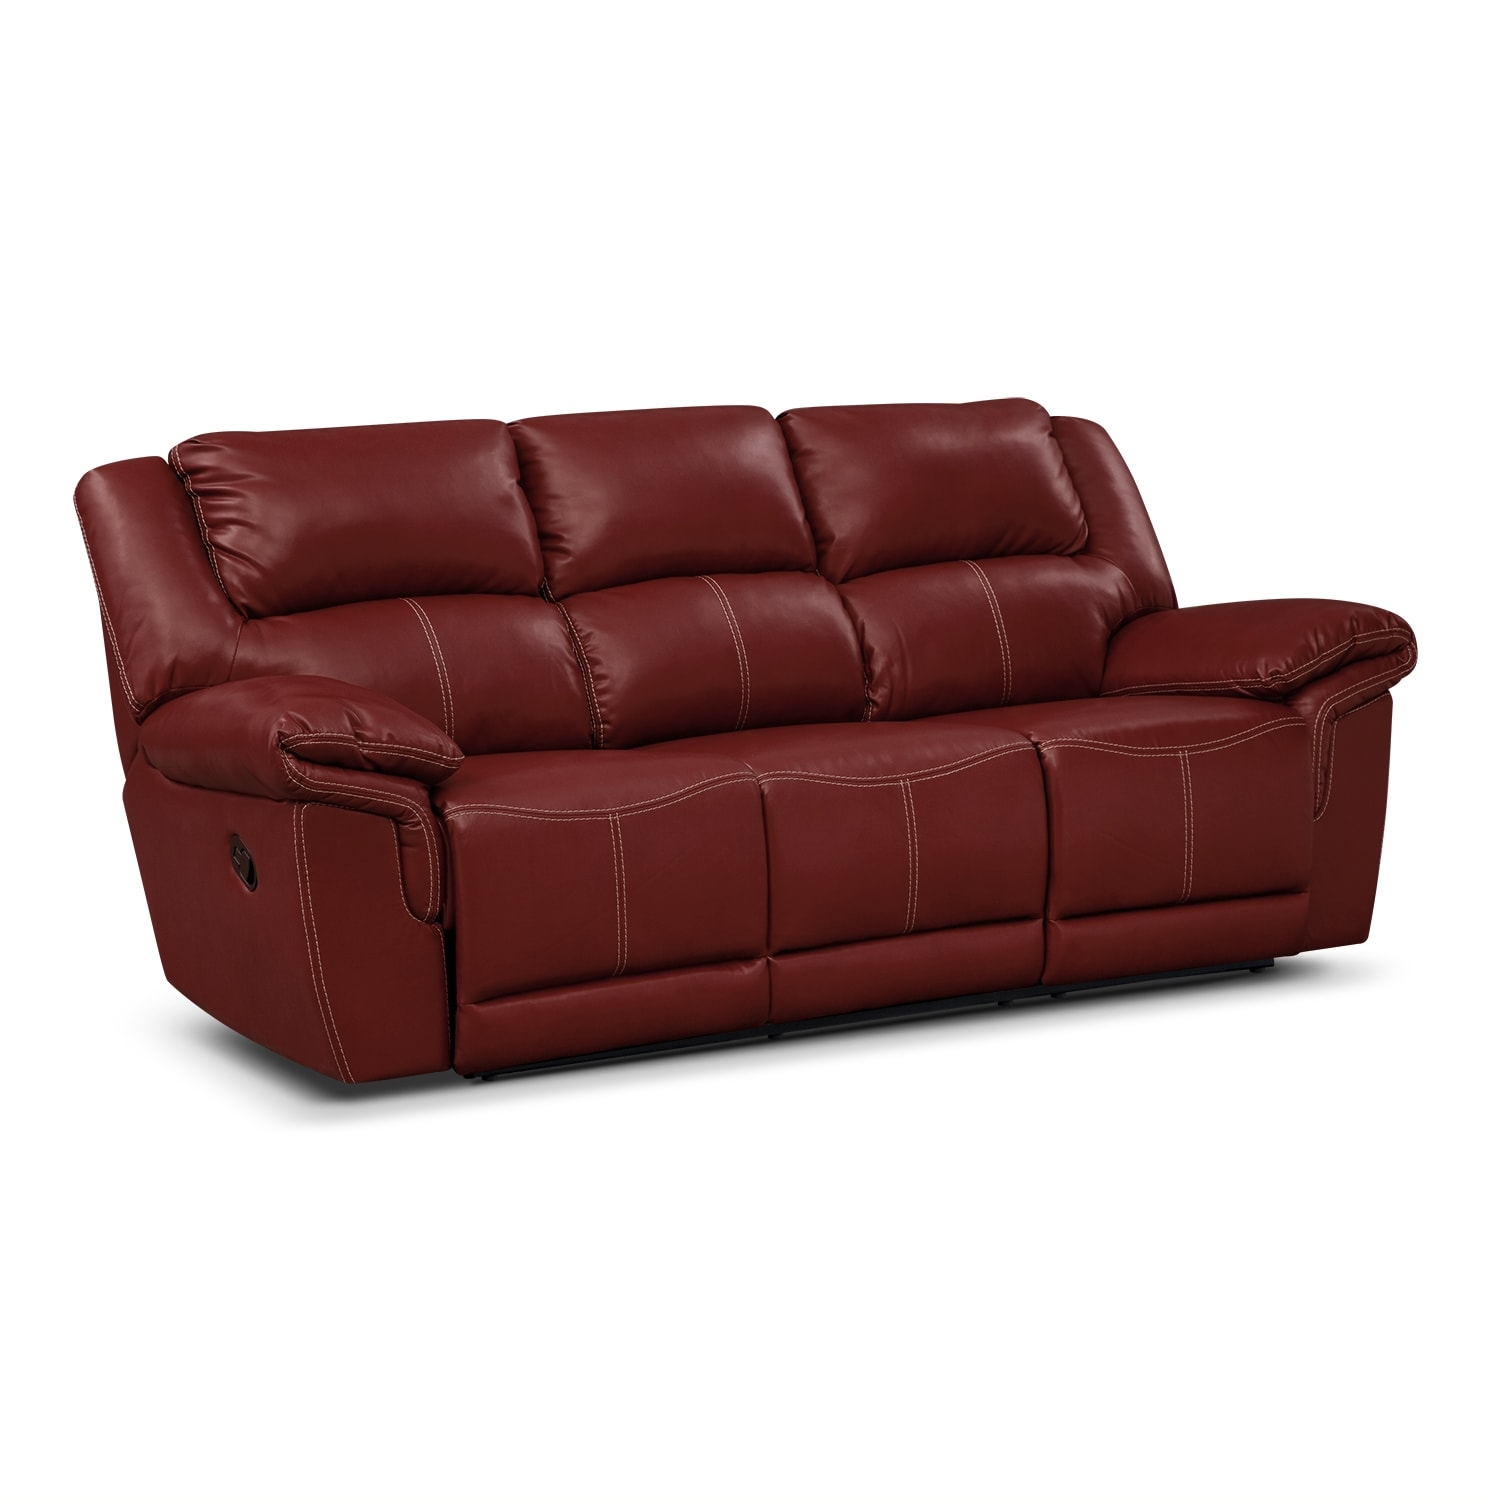 Jaguar Ii Leather Dual Reclining Sofa Value City Furniture